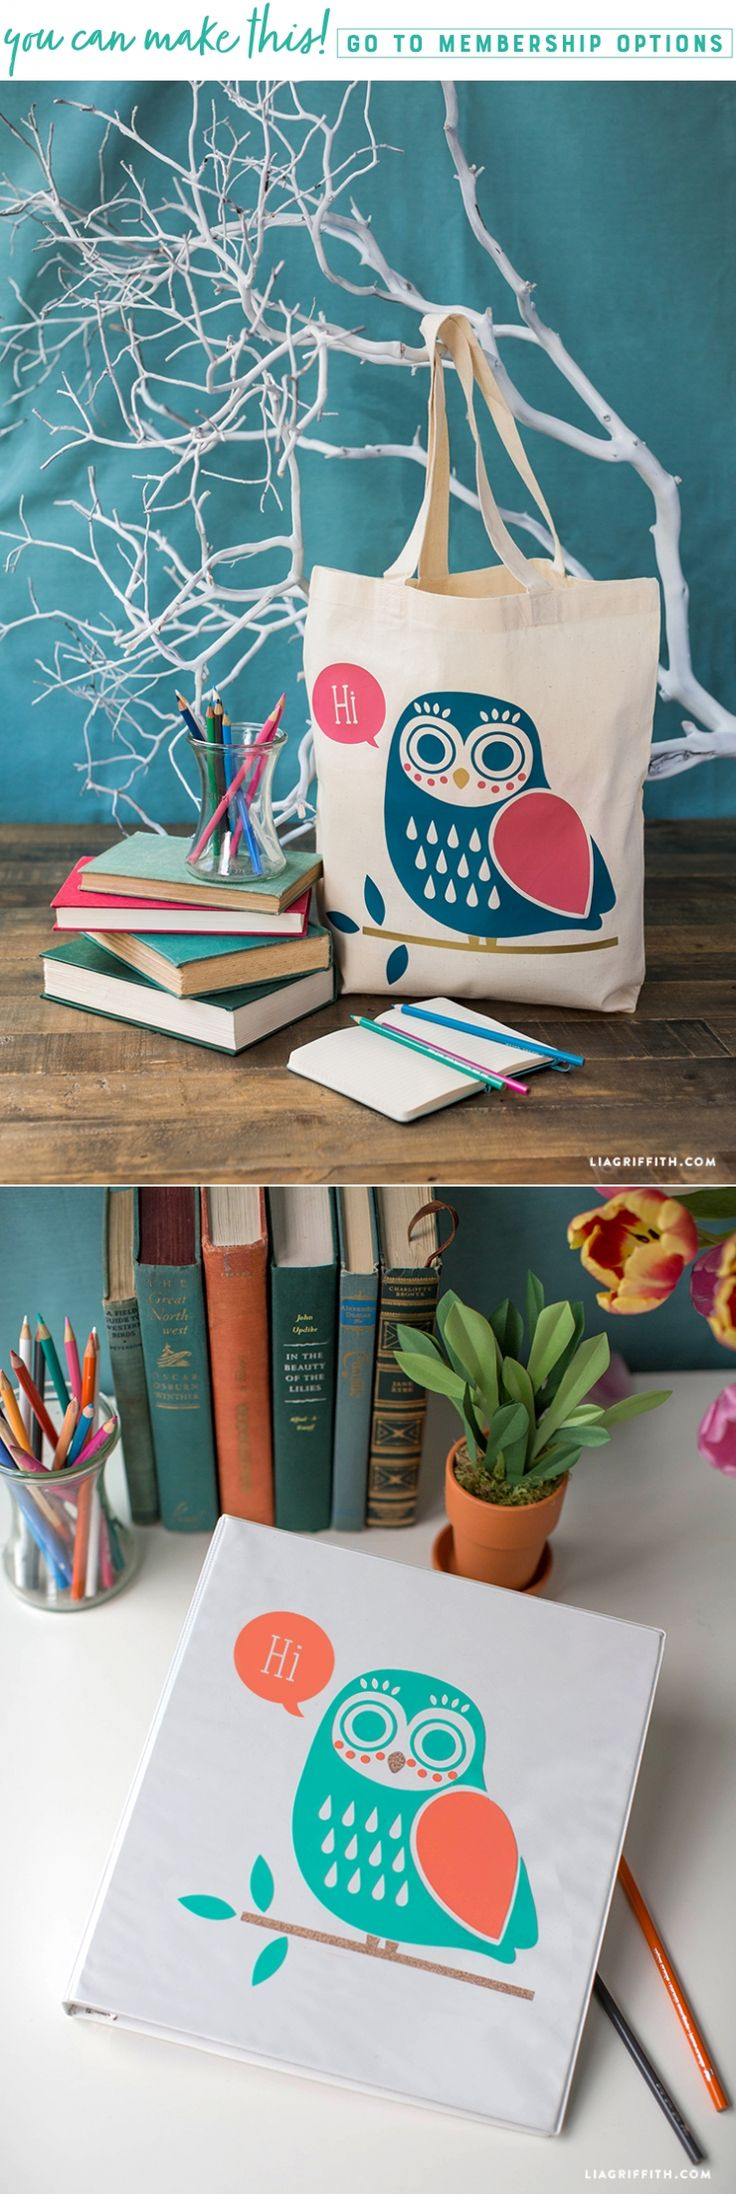 Bright Owls ✨ Add these bright owls to your favorite bag, binder t-shirt and more! We've created both iron-on and vinyl owl designs for you to liven up your favorite things. Get the PDF and SVG downloads here https://liagriffith.com/owl-design-iron-on-and-vinyl/ * * * #owl #owls #svg #ironon #vinyl #diy #diyidea #diyideas #diycraft #diycrafts #diyproject #diyprojects #diyinspiration #design #designs #custombag #cute #cutecrafts #madewithlia